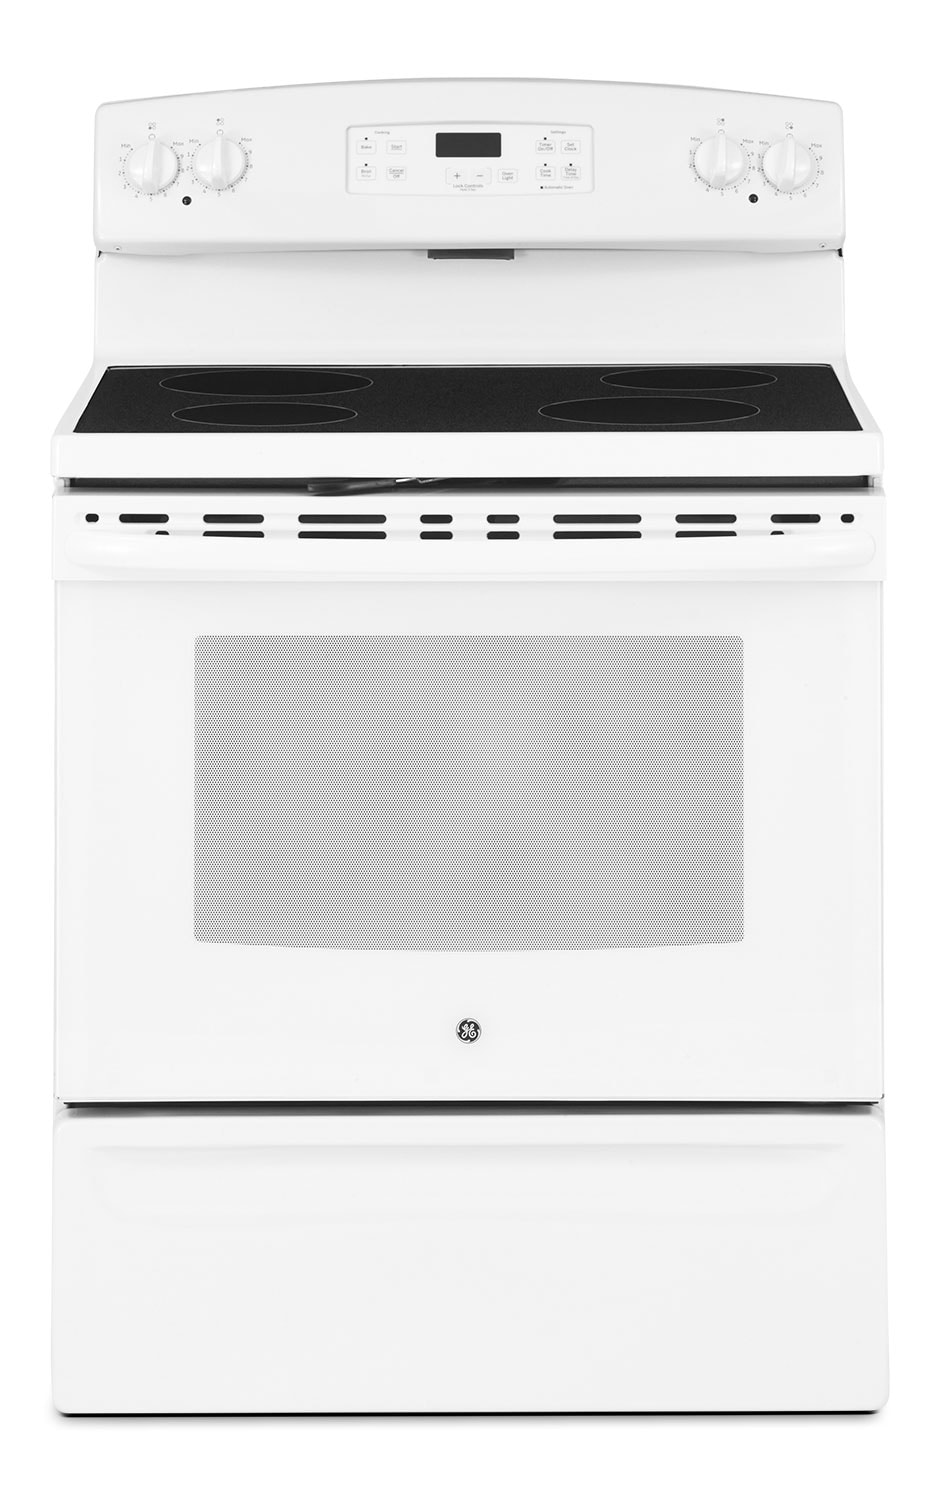 GE 5.0 Cu. Ft. Freestanding Electric Range – White